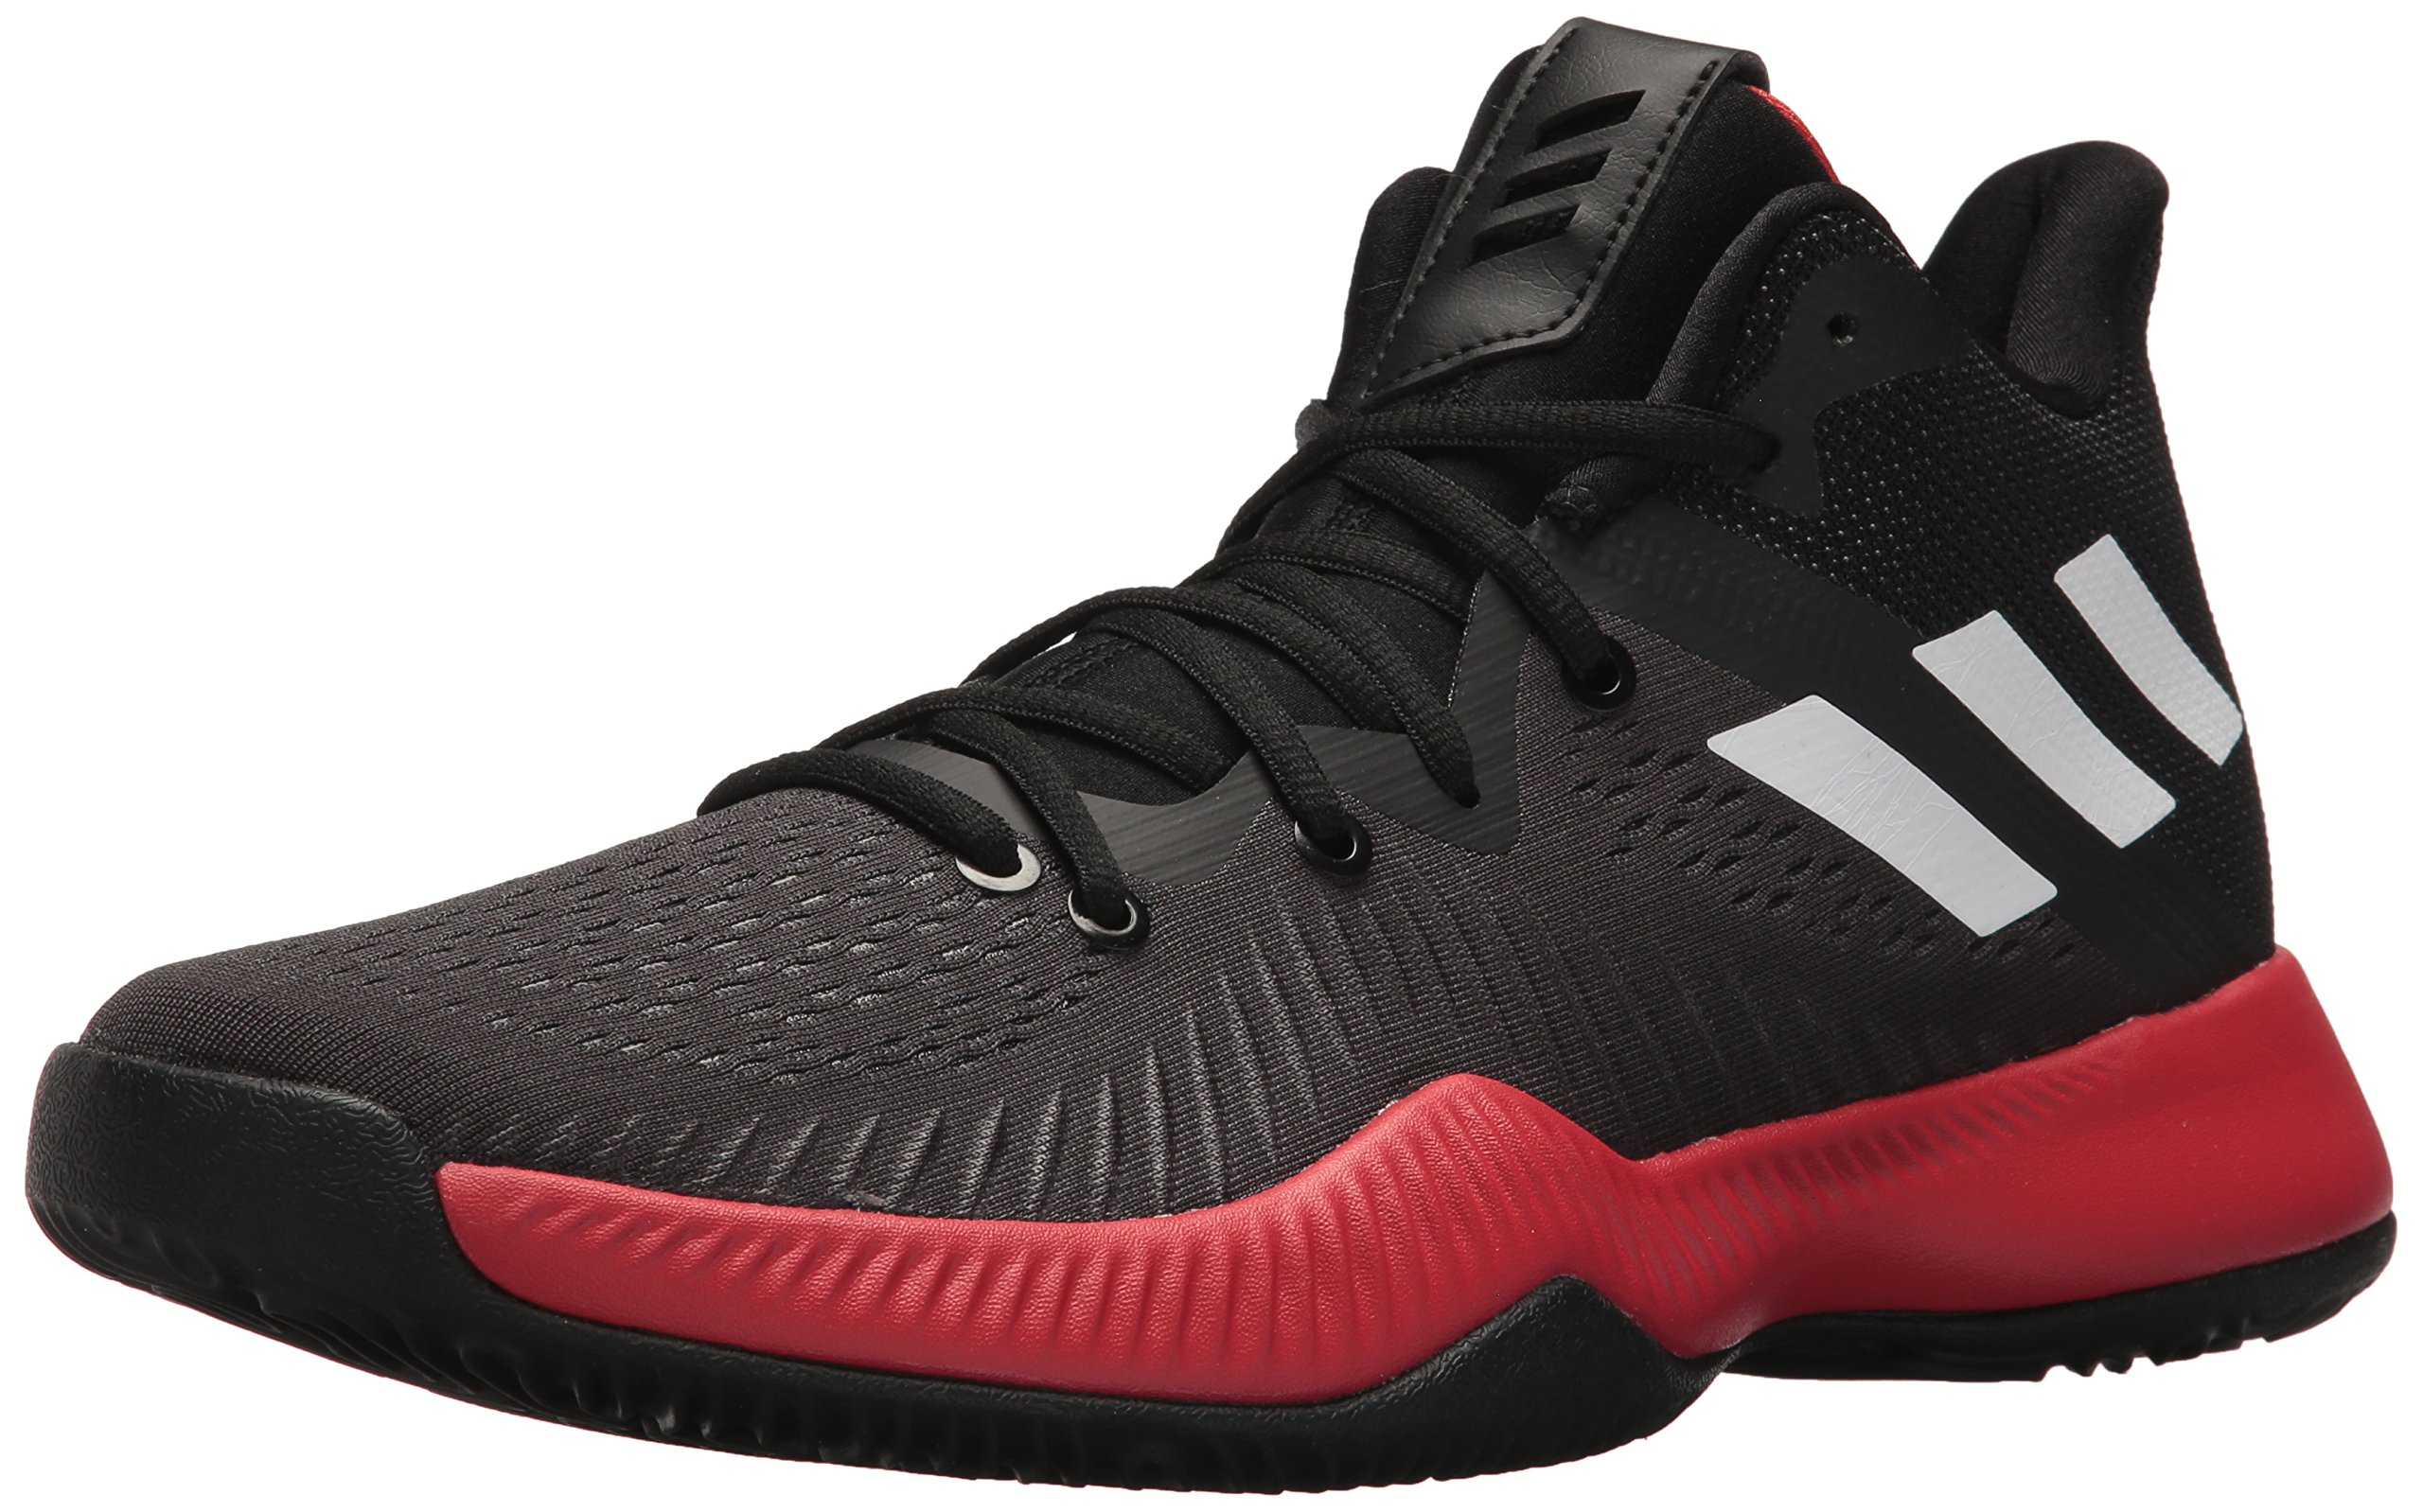 b9cacc683 Galleon - Adidas Men s Mad Bounce Basketball Shoe